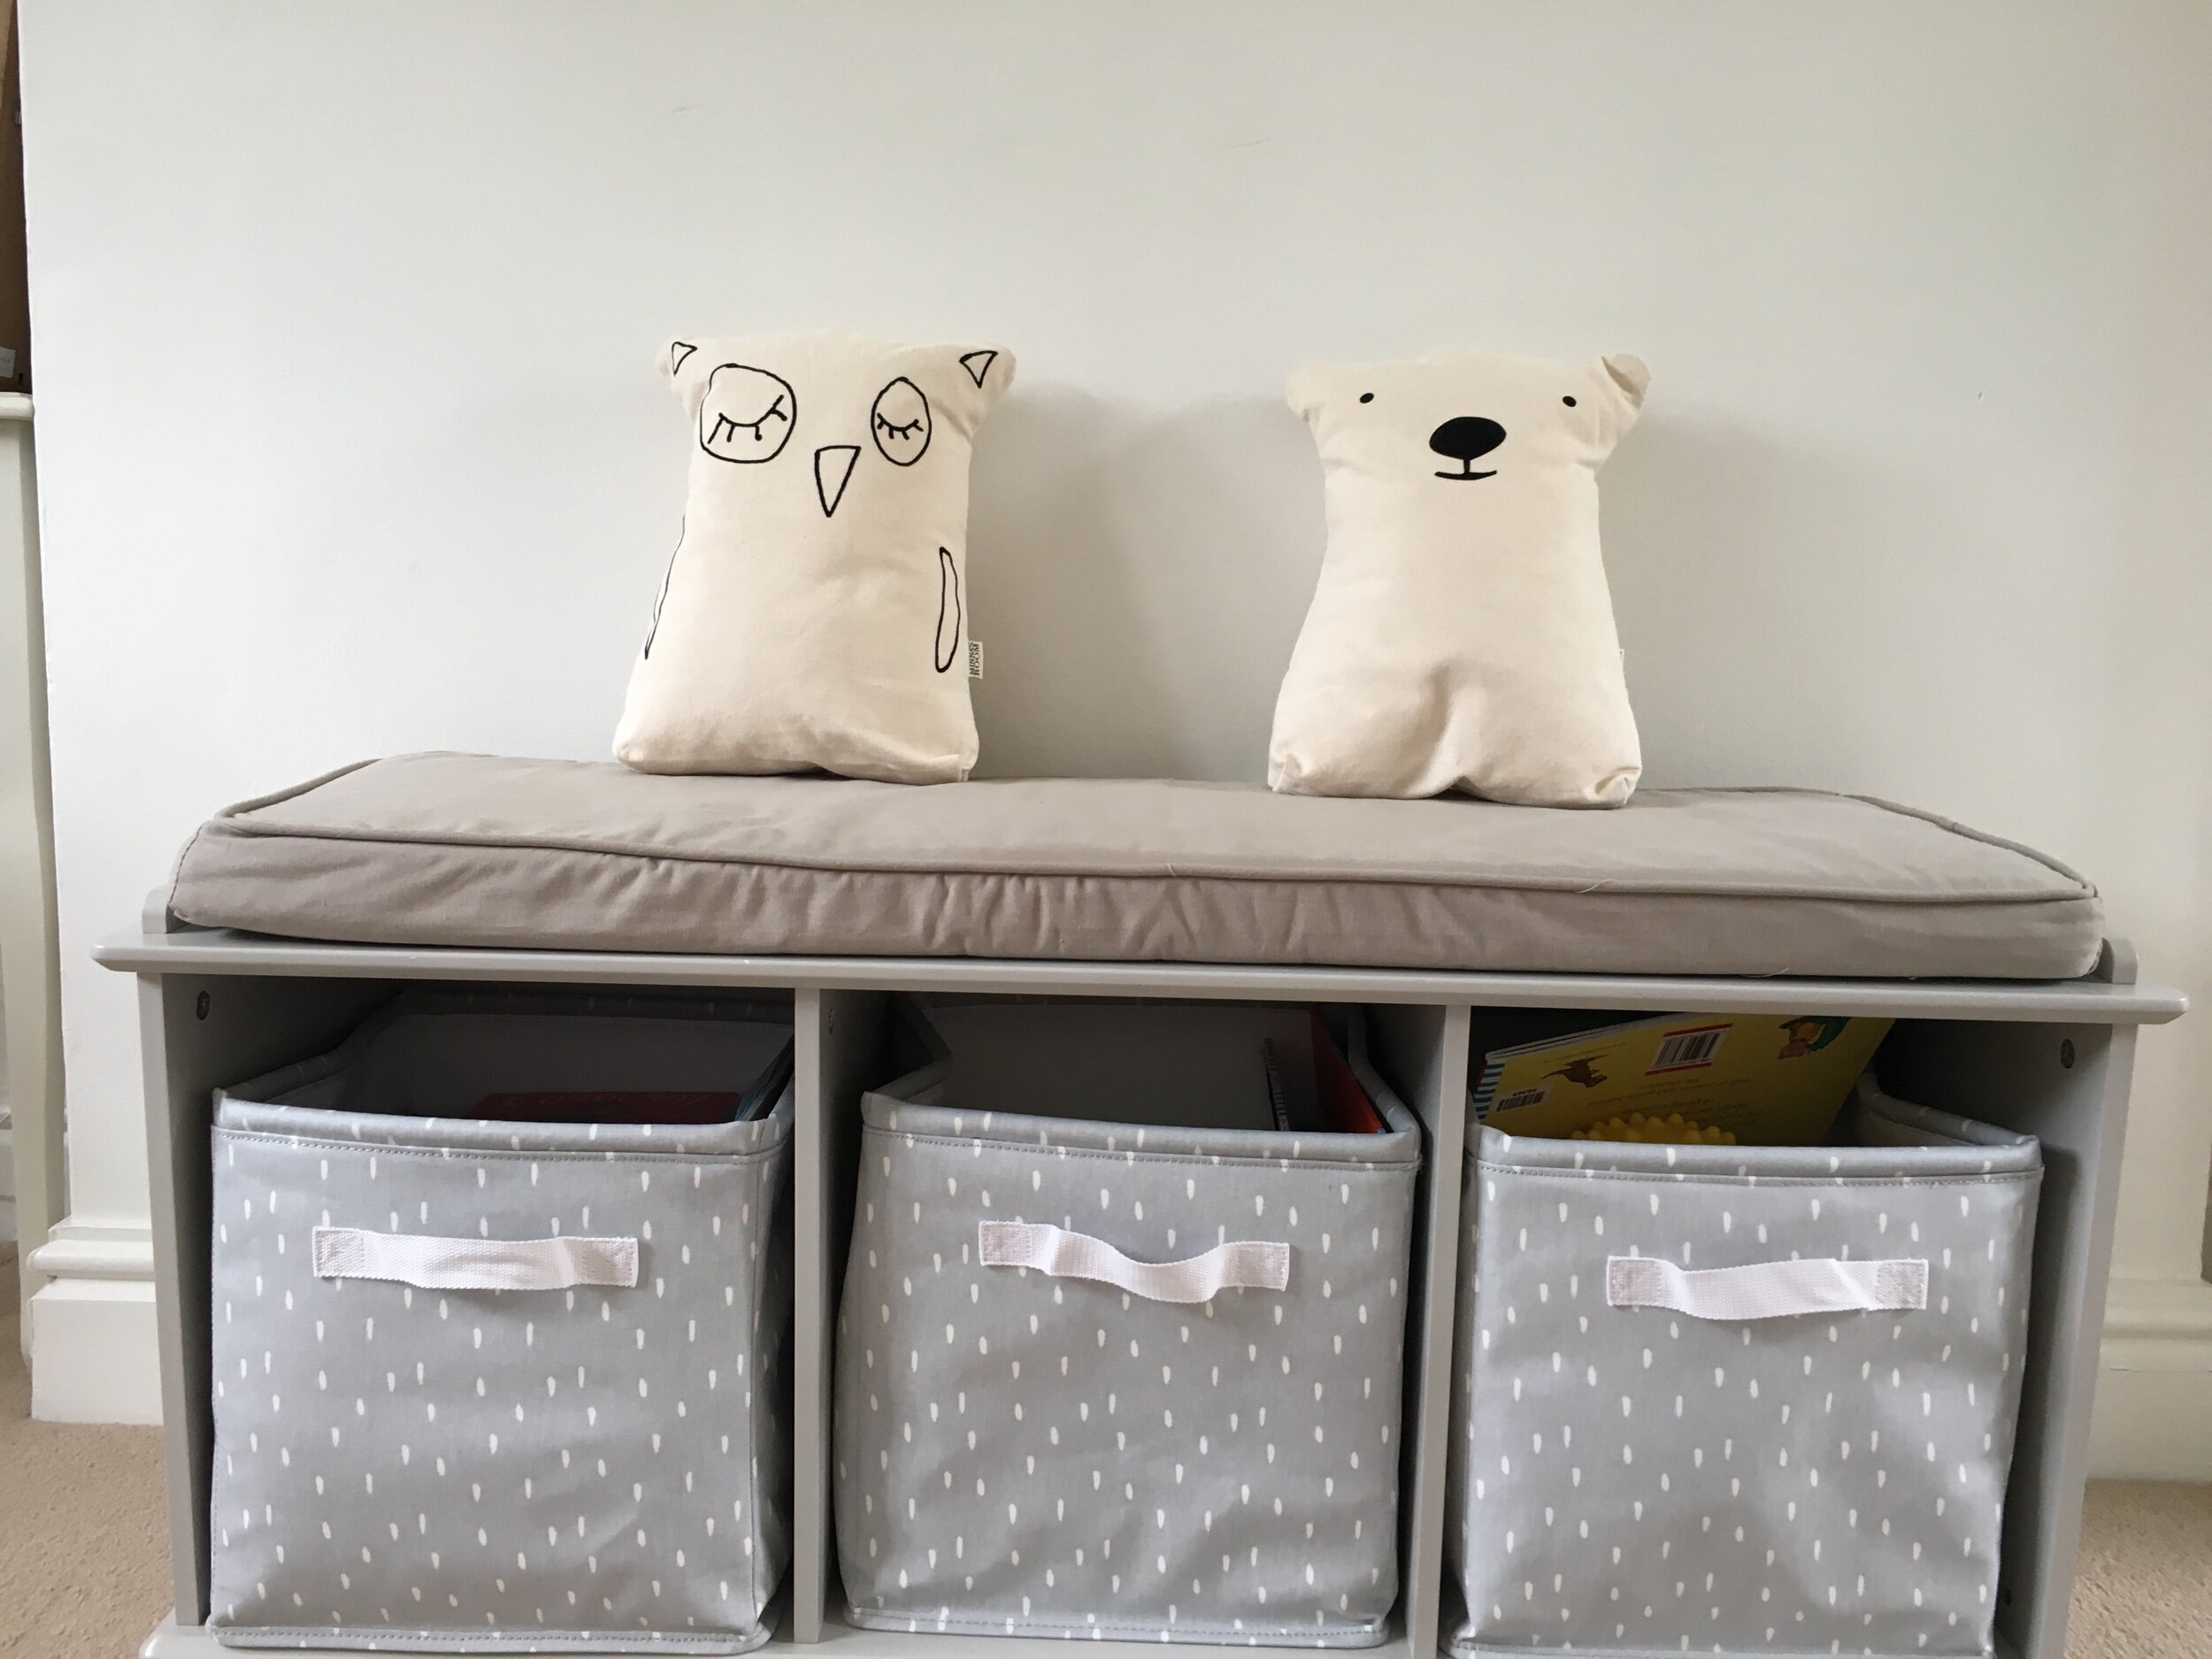 How can you make a storage area look better? Invest in some beautiful woodland theme cushions to put on top of it! We love this owl and bear ensemble!